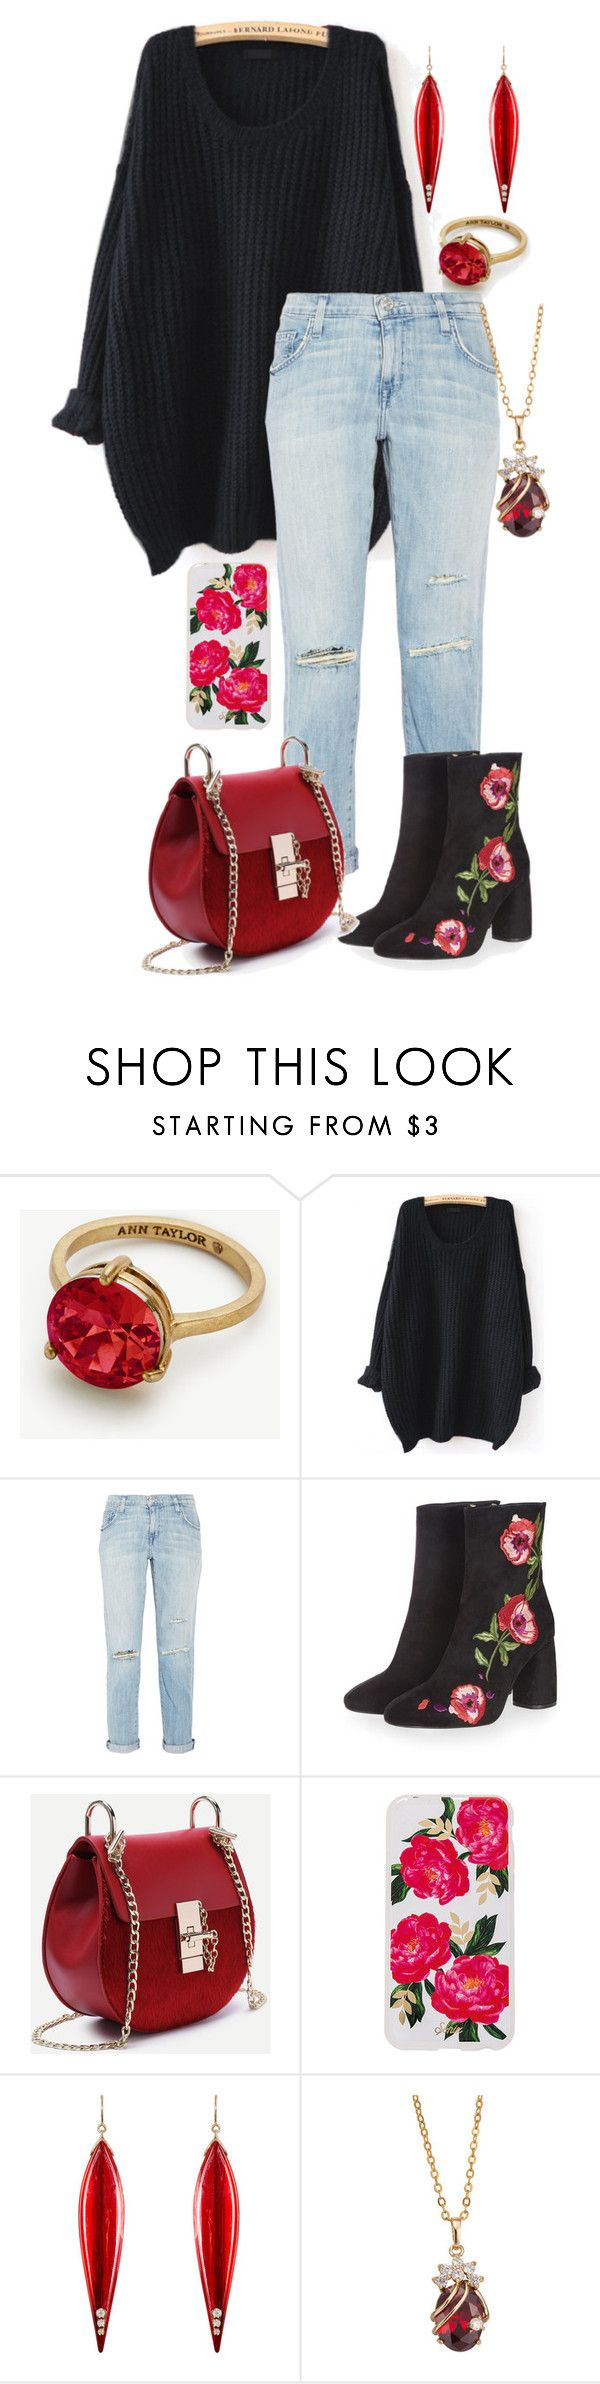 """Casual New Year"" by major-12 ❤ liked on Polyvore featuring Ann Taylor, WithChic, Current/Elliott, Topshop, Sonix and Mark Davis"